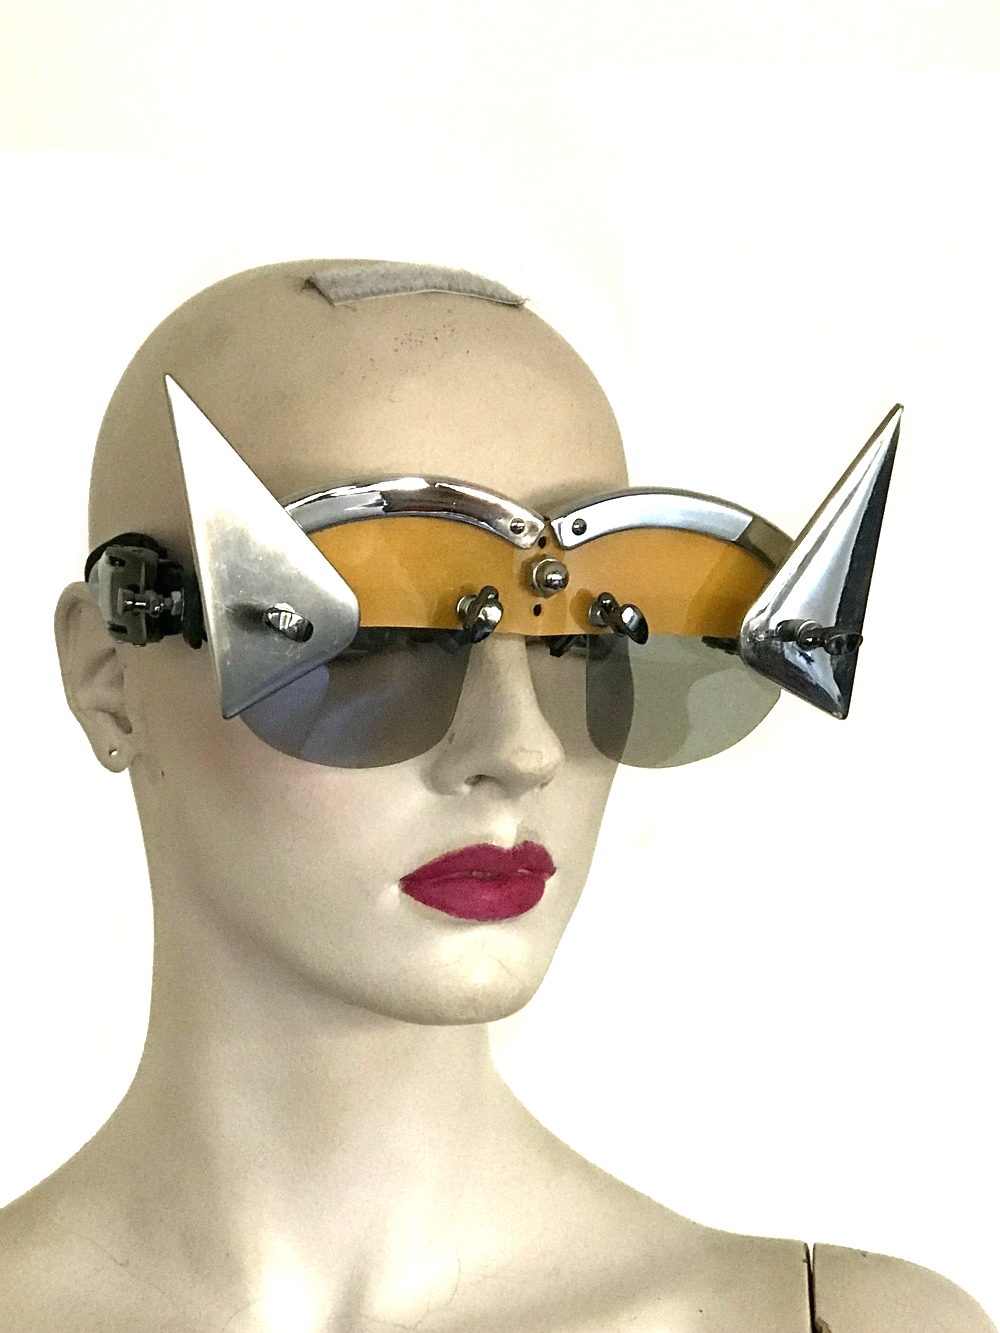 futuristic modern steampunk eyewear for artists triangular horns, yellow face